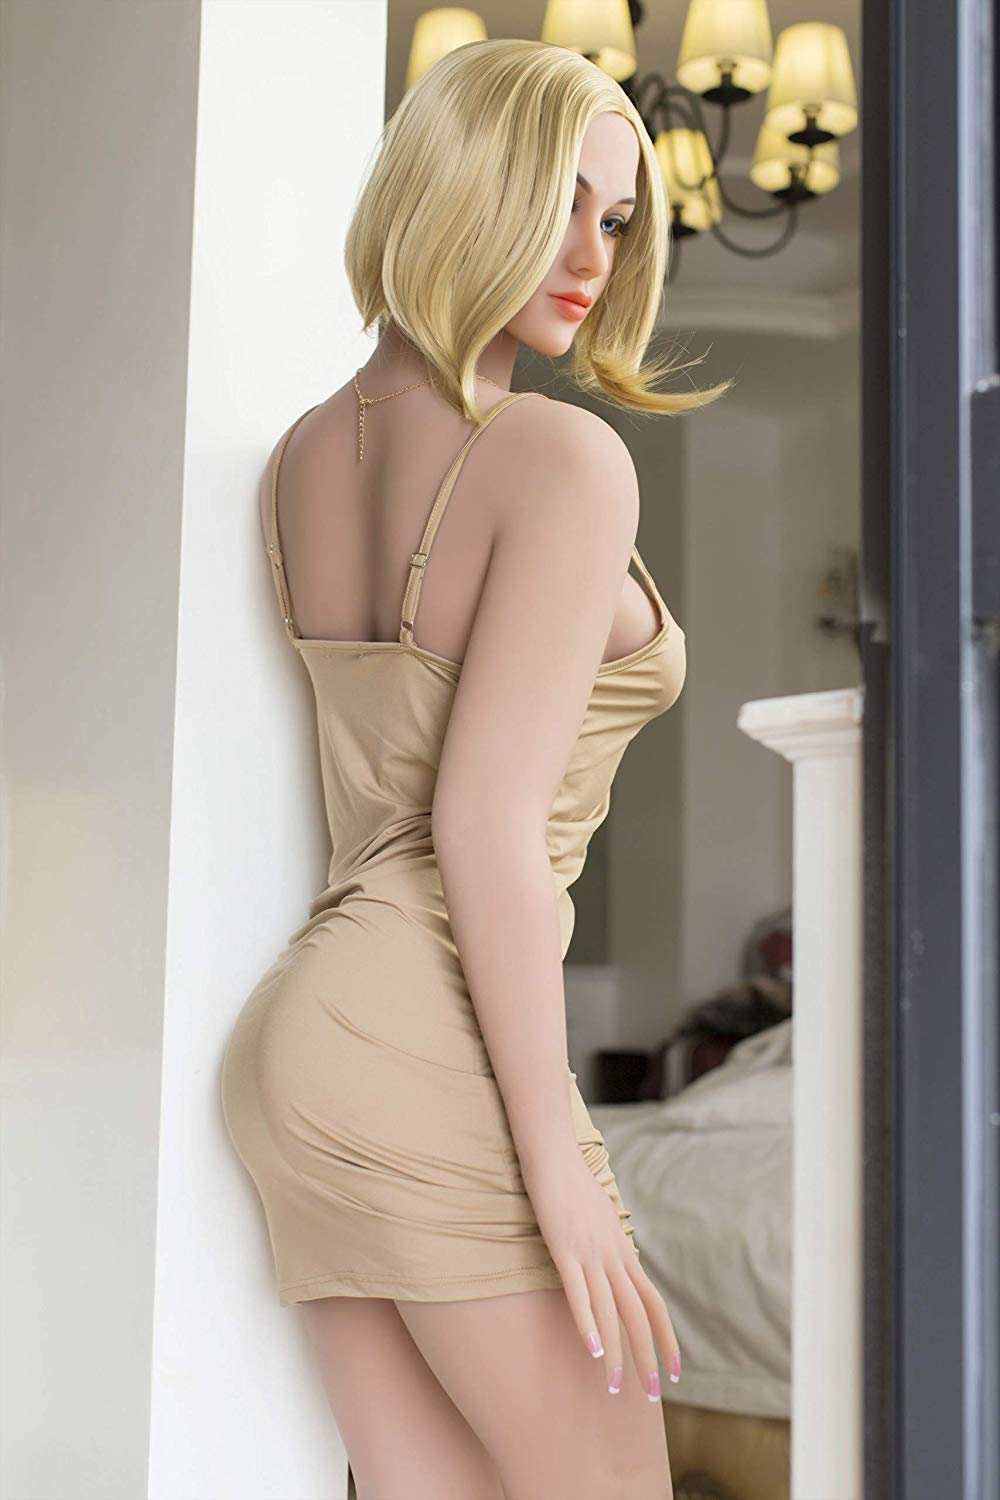 Hot Blonde Real Doll - Sex Doll